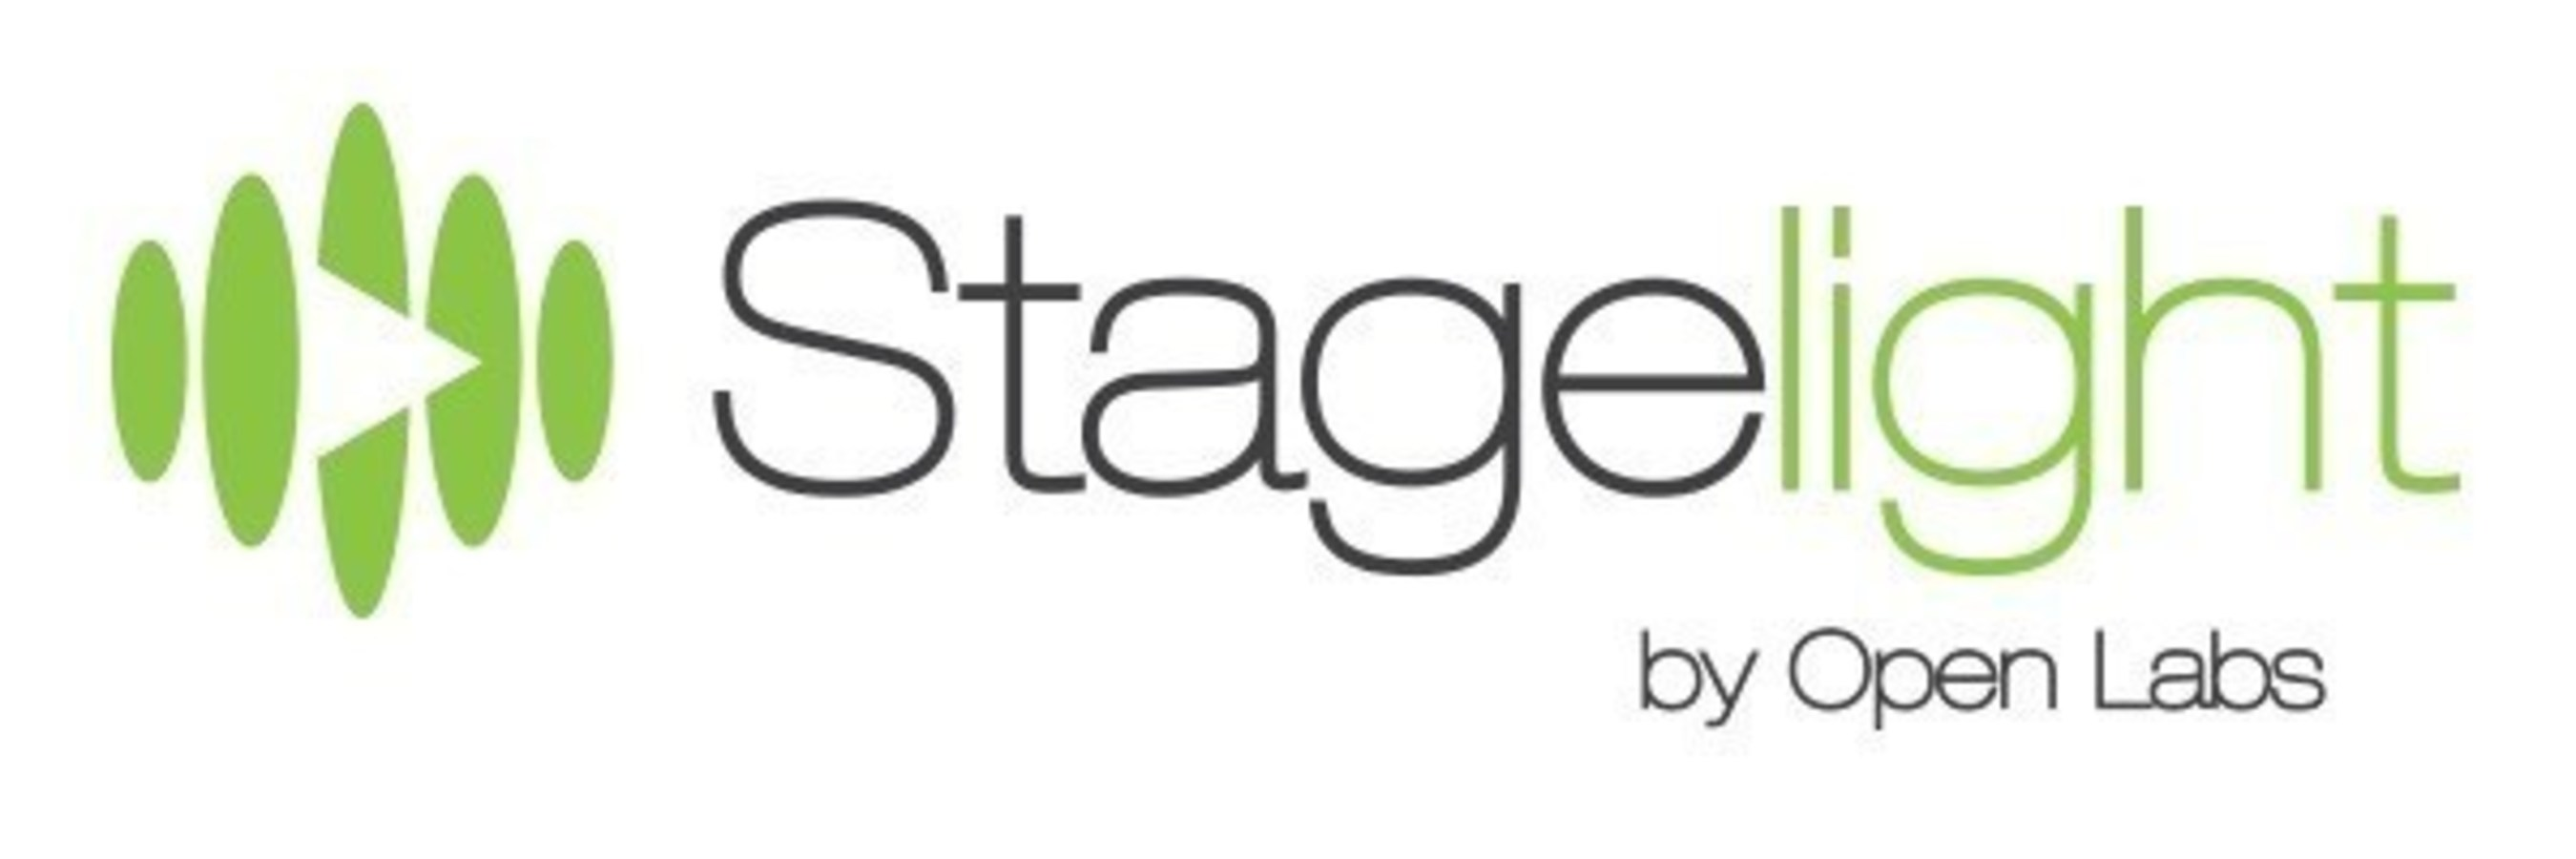 Headquartered in Austin, TX - Open Labs, creators of Stagelight - The Easy Way to Create Music, creates ...